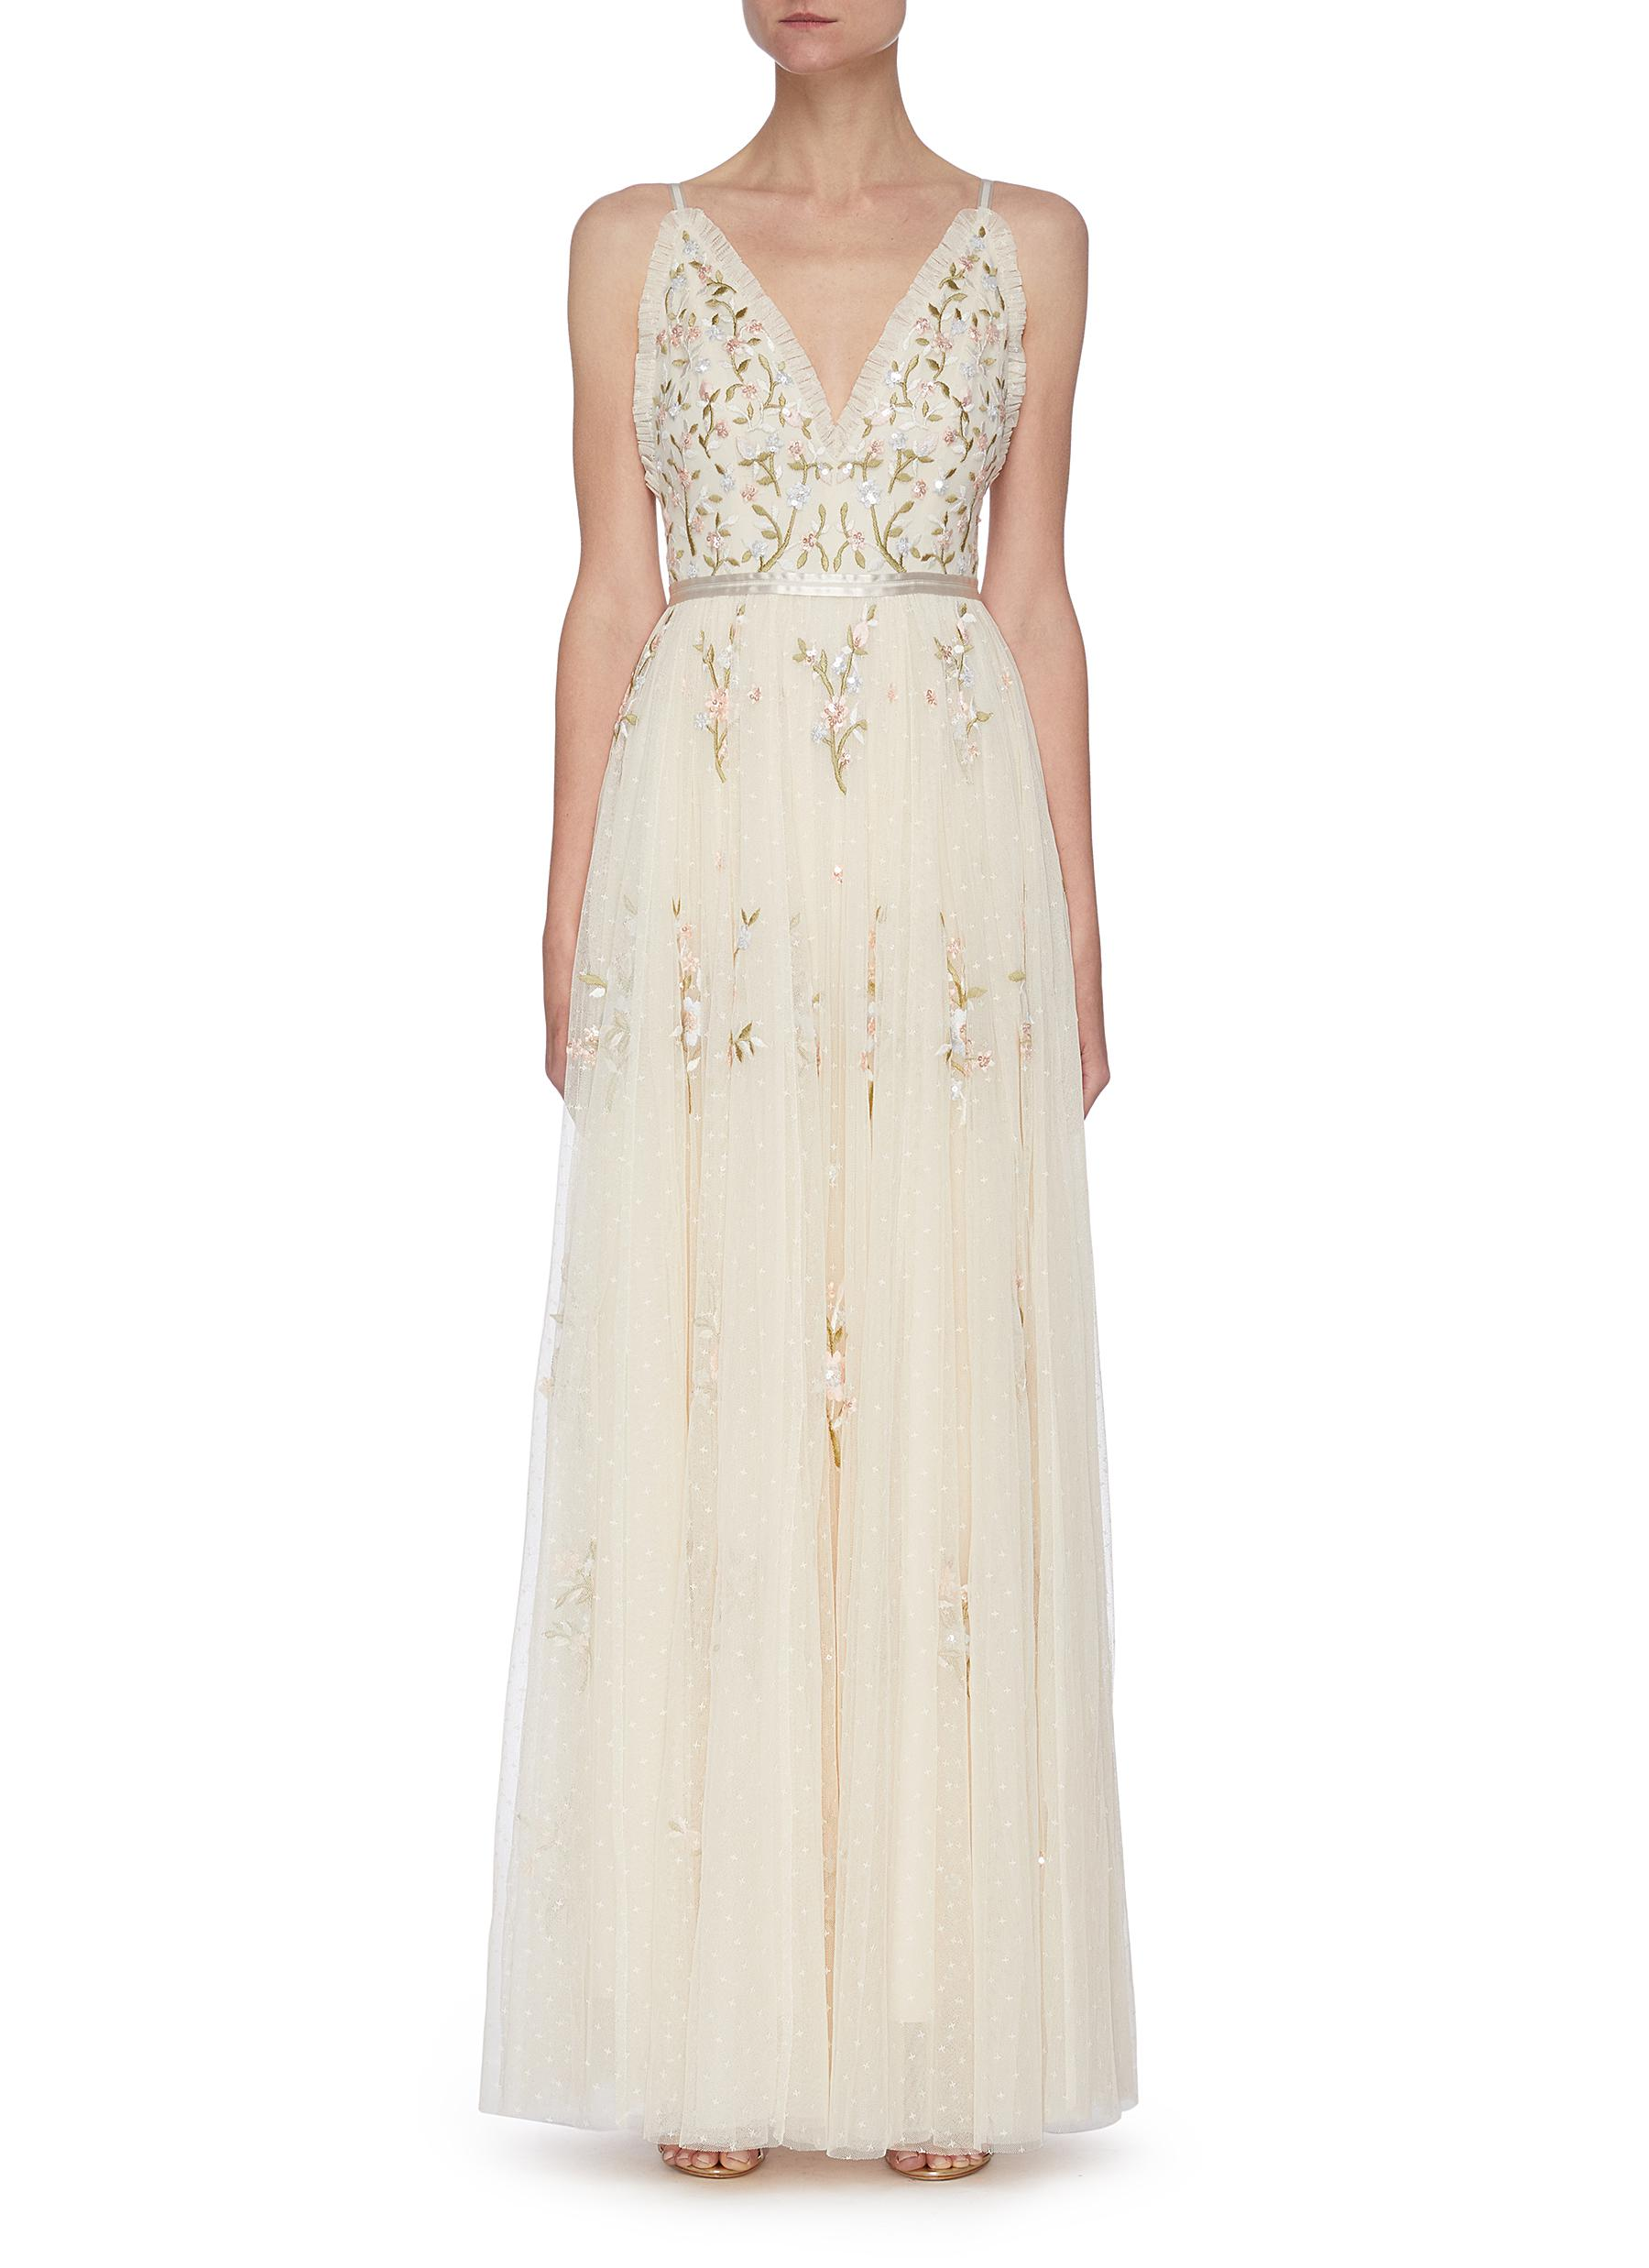 Needle & Thread Gowns 'PETUNIA' PLEATED TRIM FLORAL EMBROIDERED GOWN